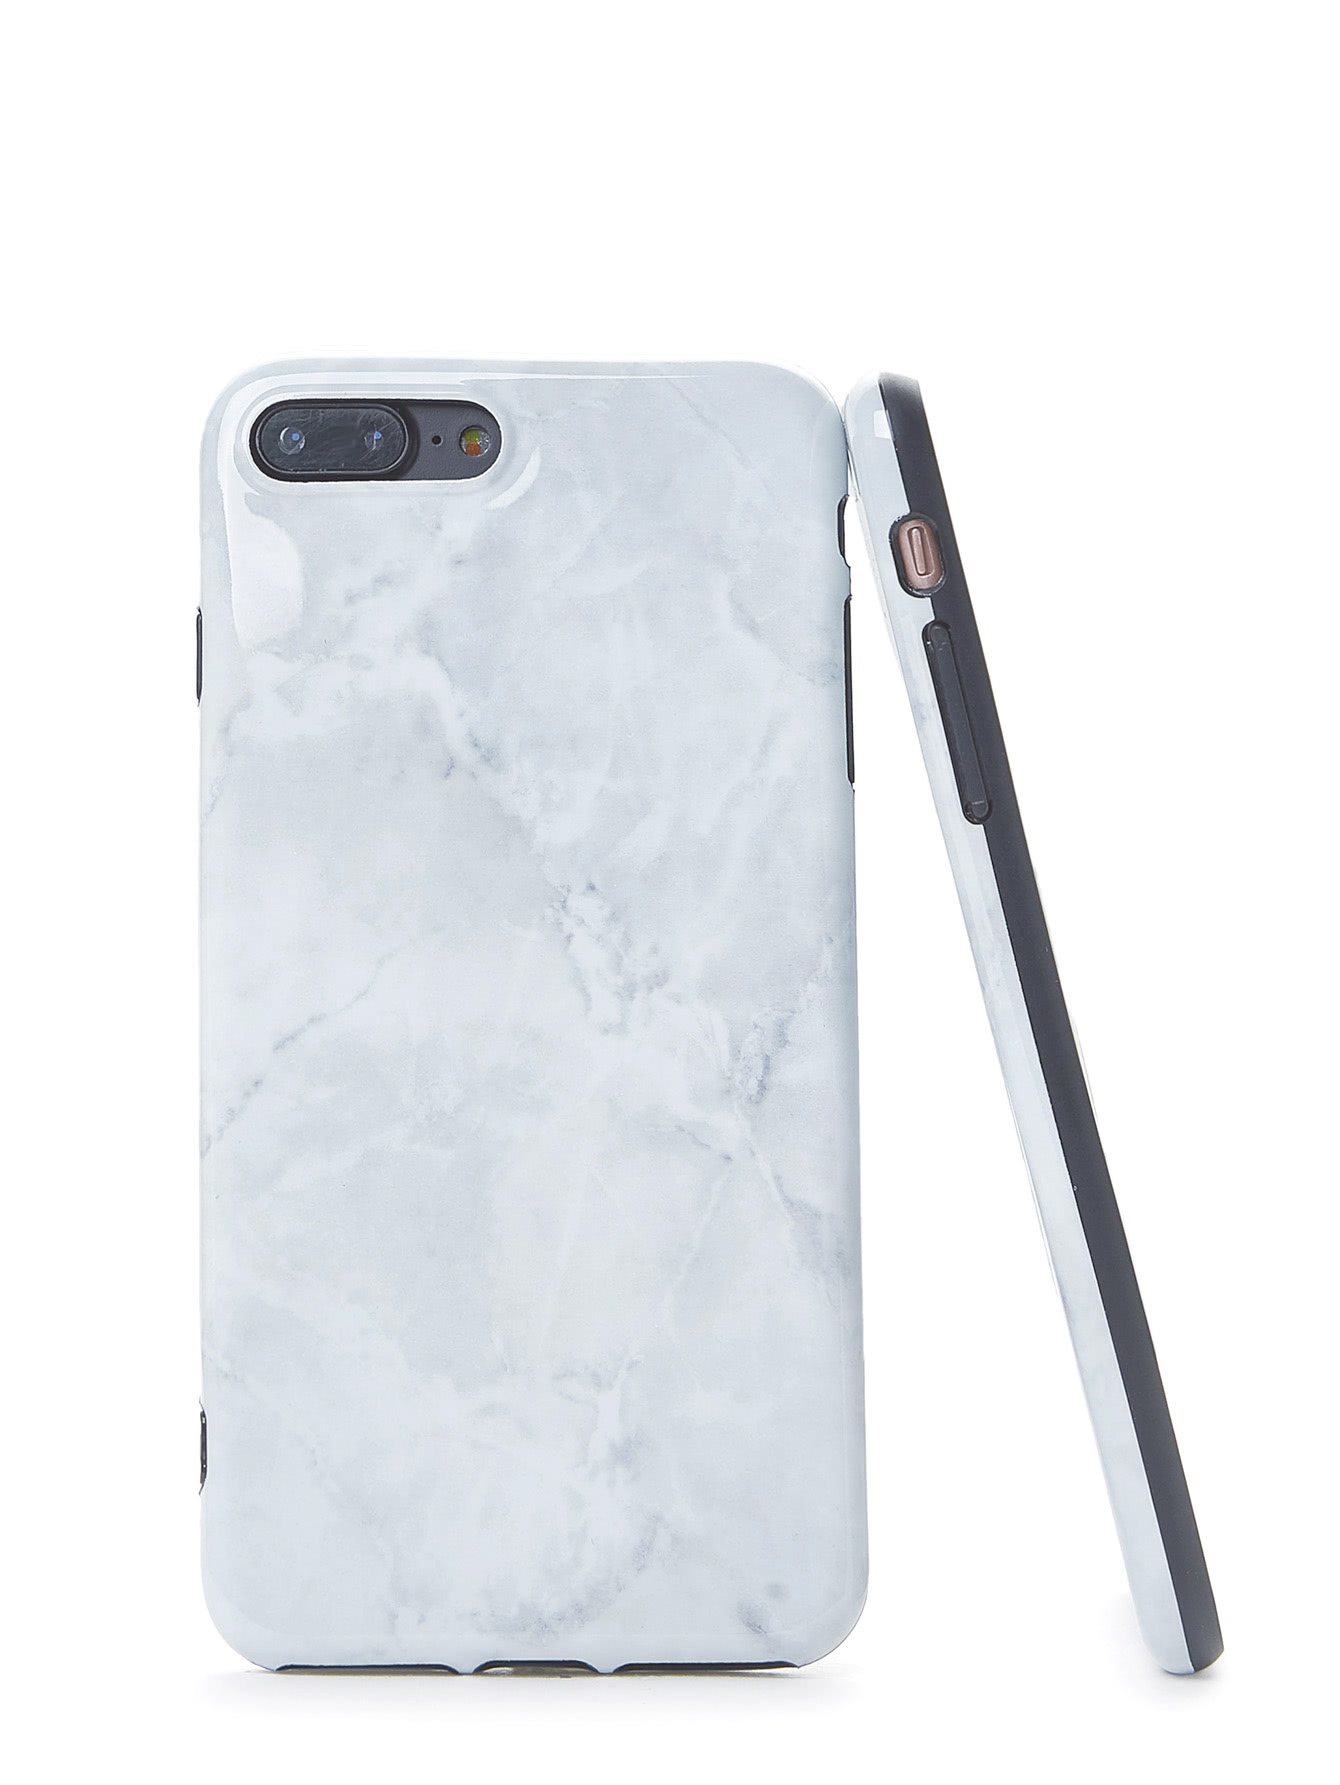 Simple Marble Pattern iPhone Case marble pattern iphone case